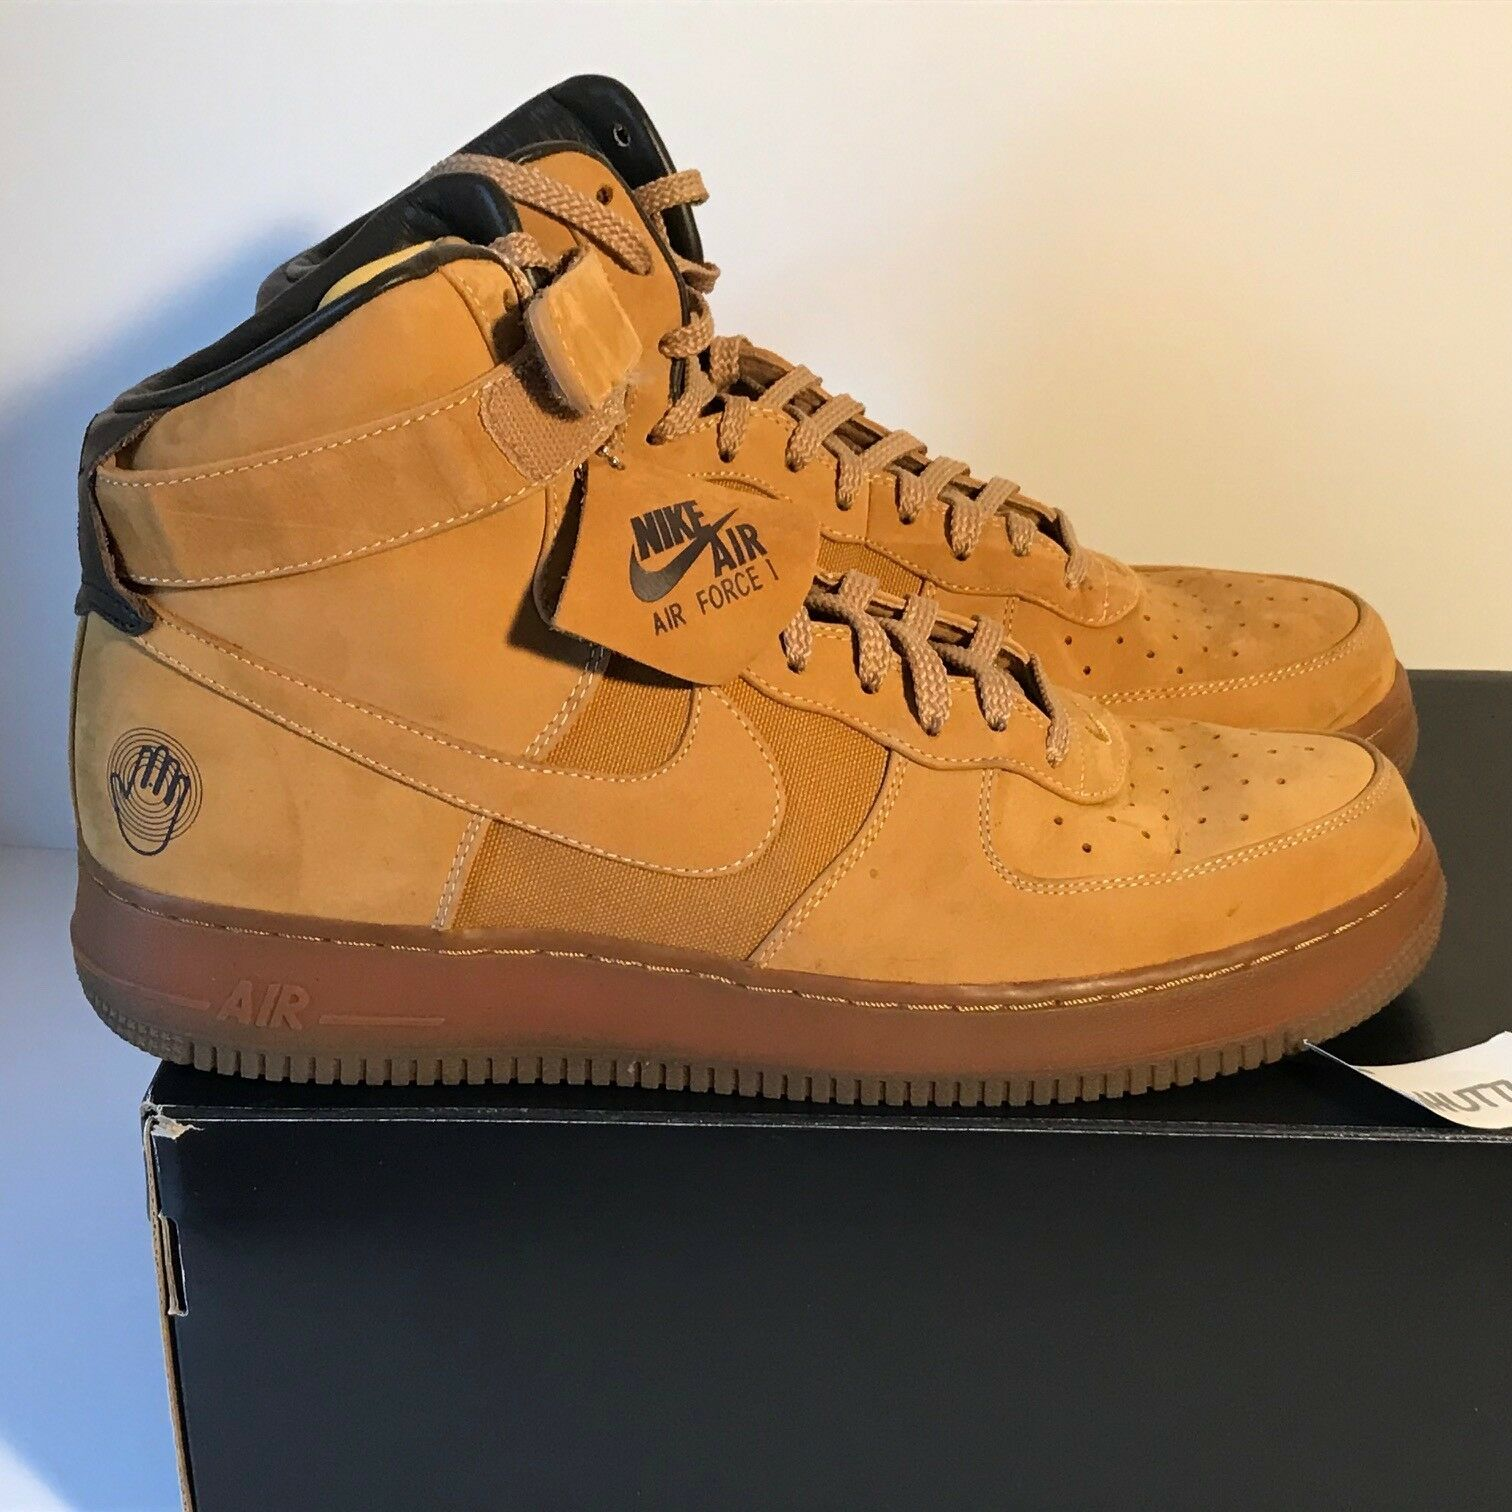 Air Force 1 One Hi Premium Sz 11.5 Bobbito Mac & Cheese 318431 771 2007 Wheat TZ